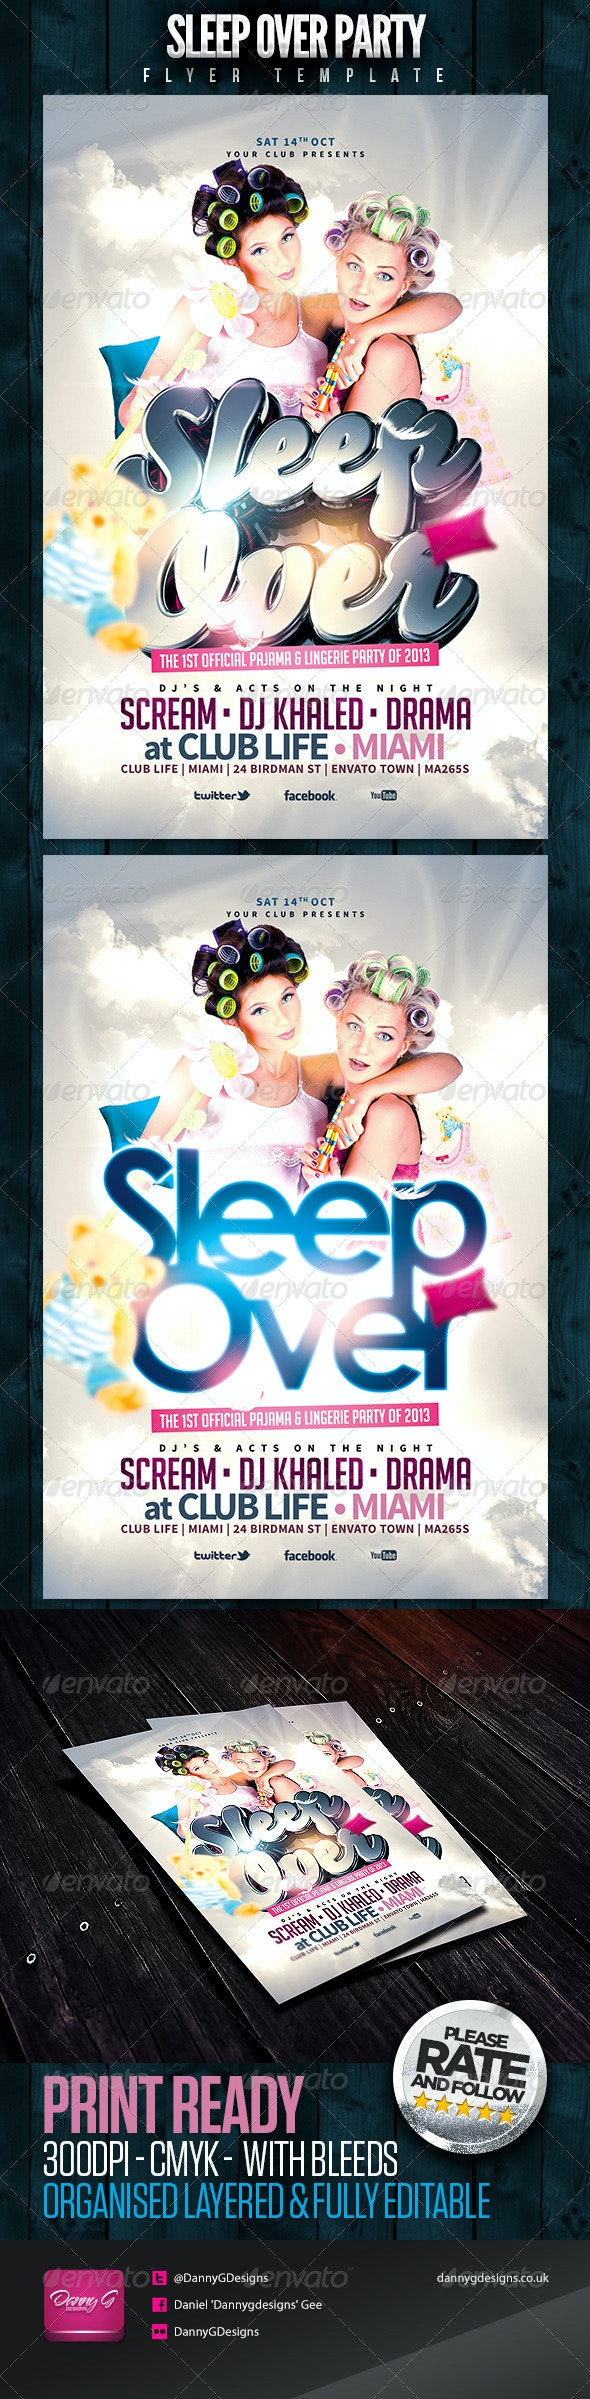 Sleep Over Party Flyer Template - Clubs & Parties Events